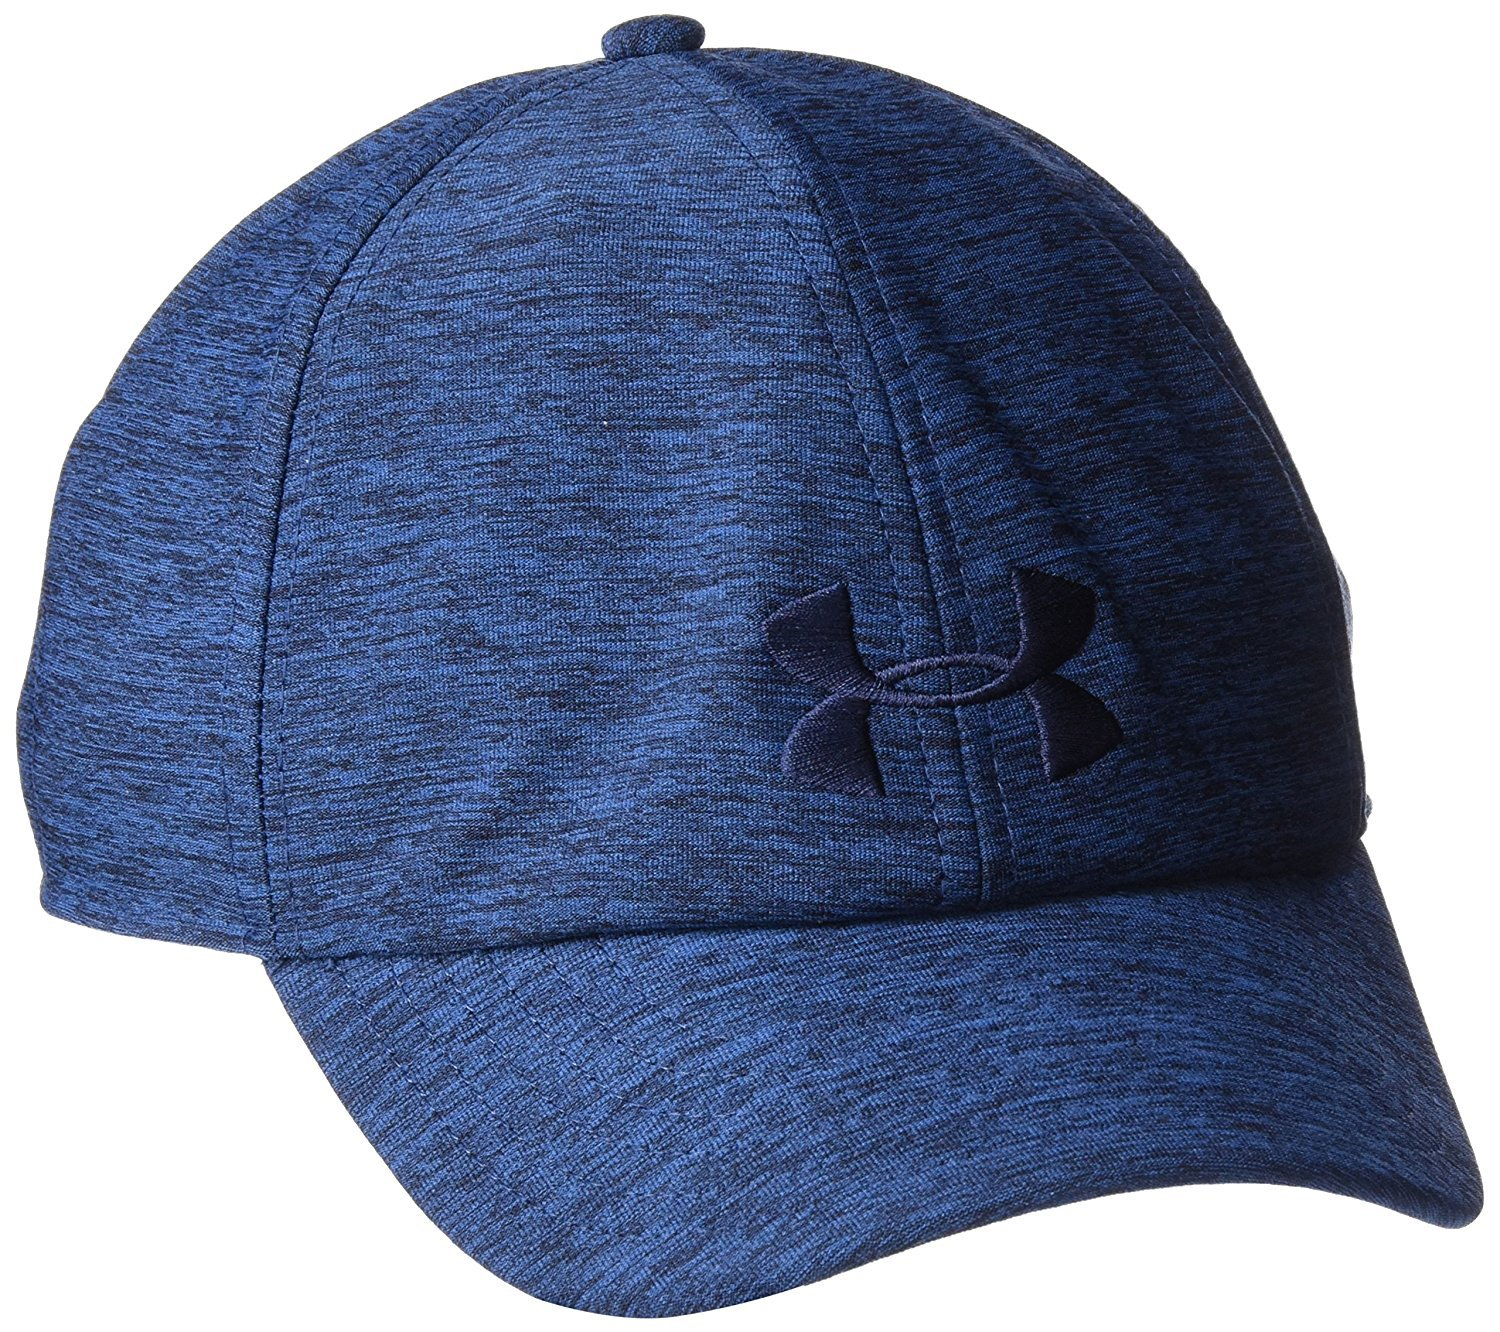 Under Armour Women's Renegade Twist Cap Under Armour Accessories 1291072